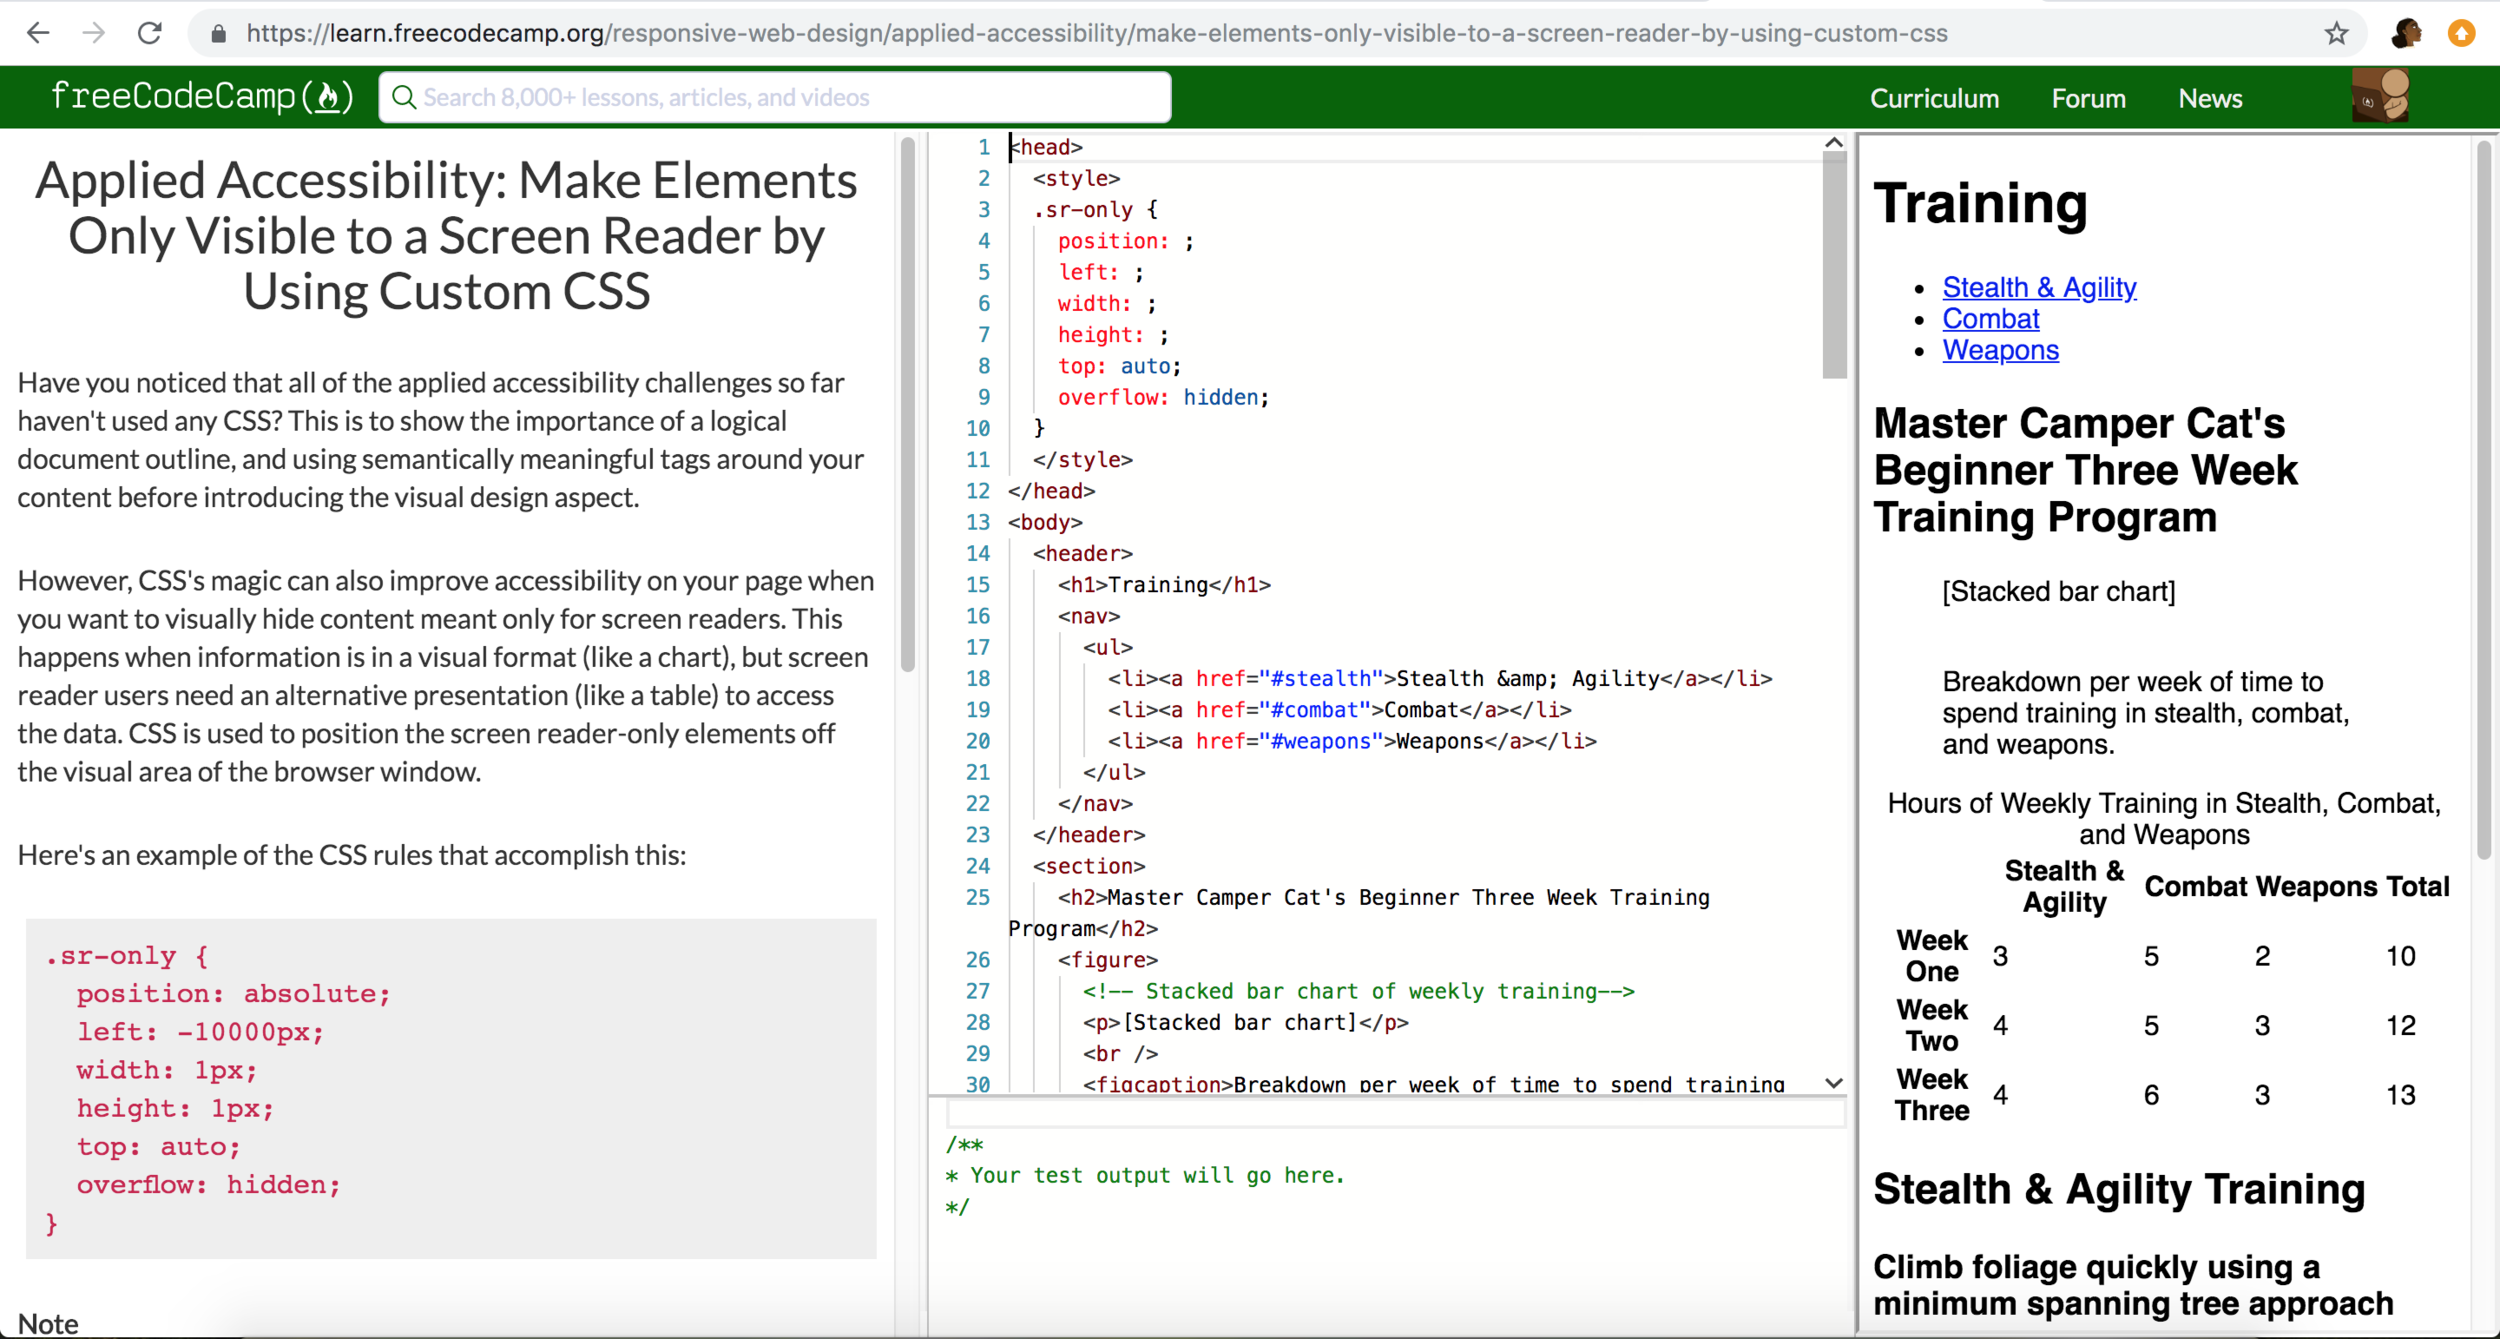 Screenshot of the current lesson I am working on provided by FreeCodeCamp.org